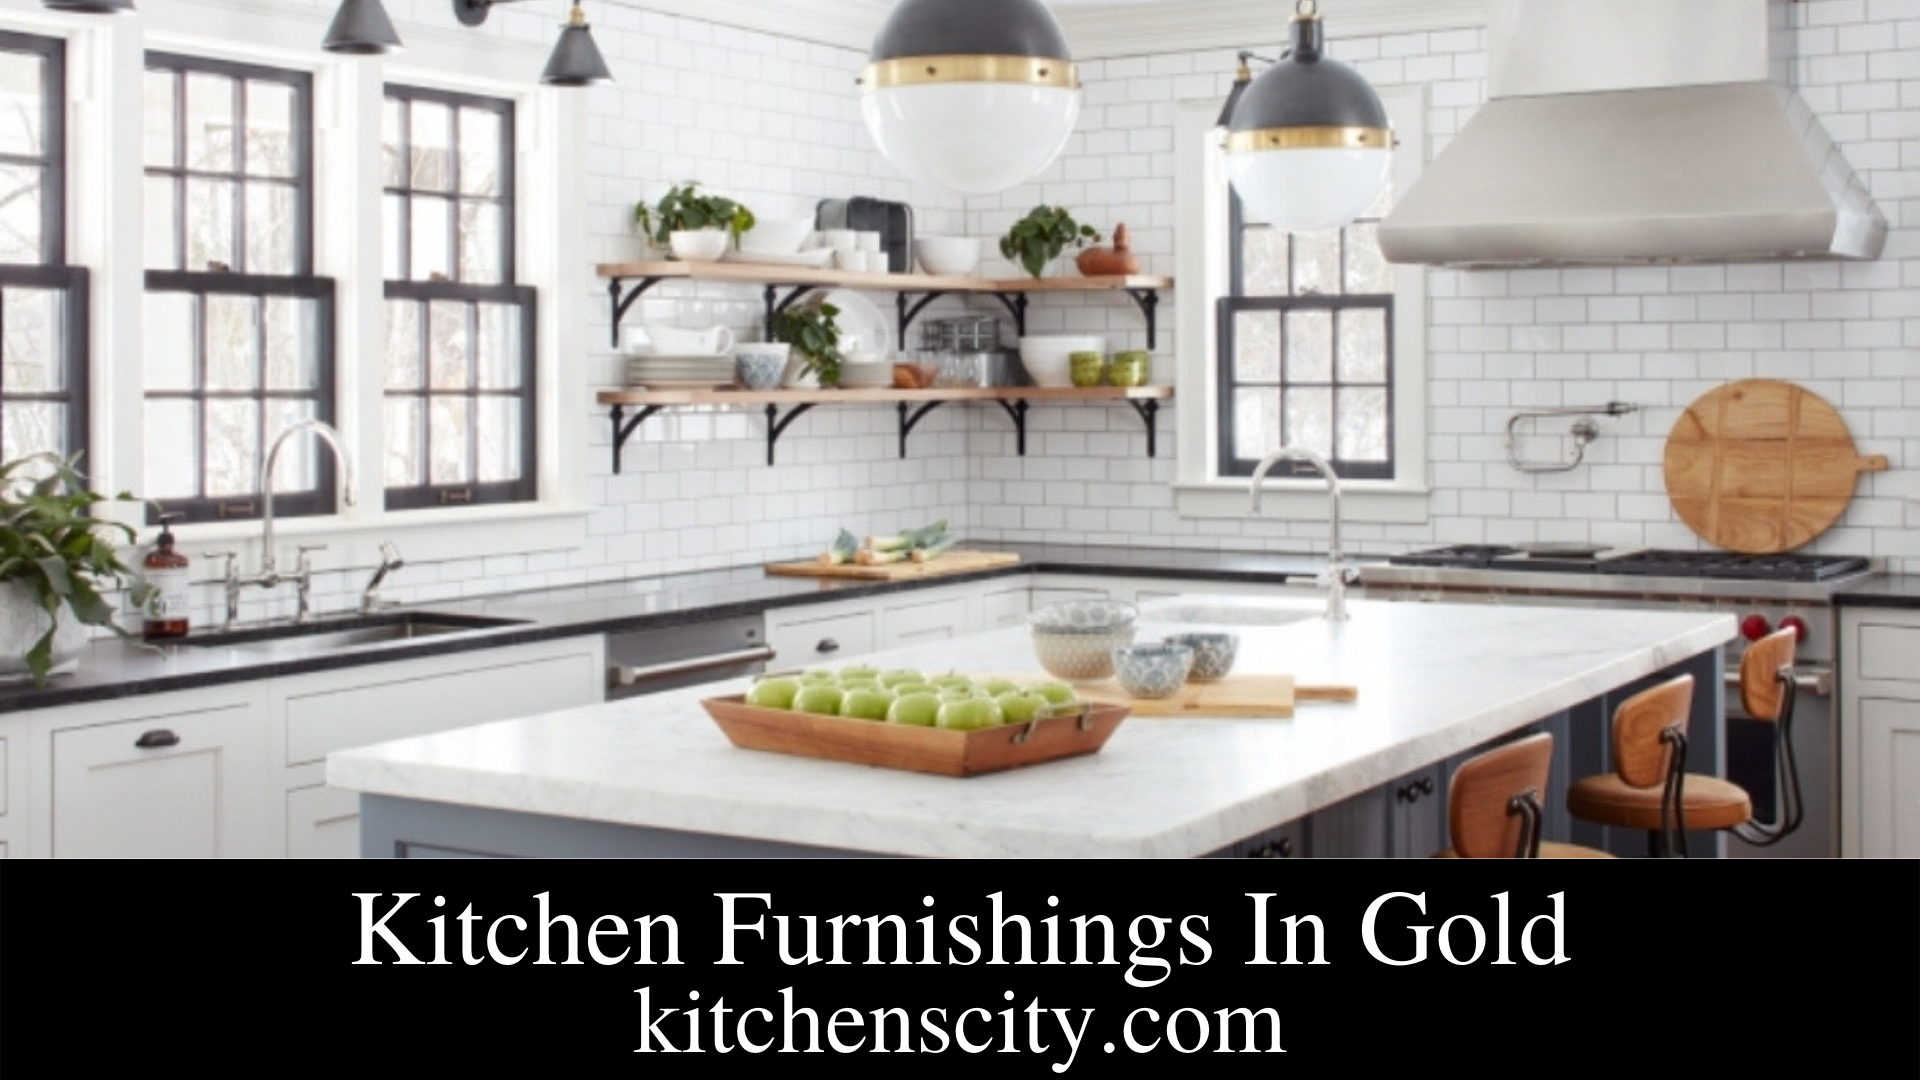 Kitchen Furnishings In Gold